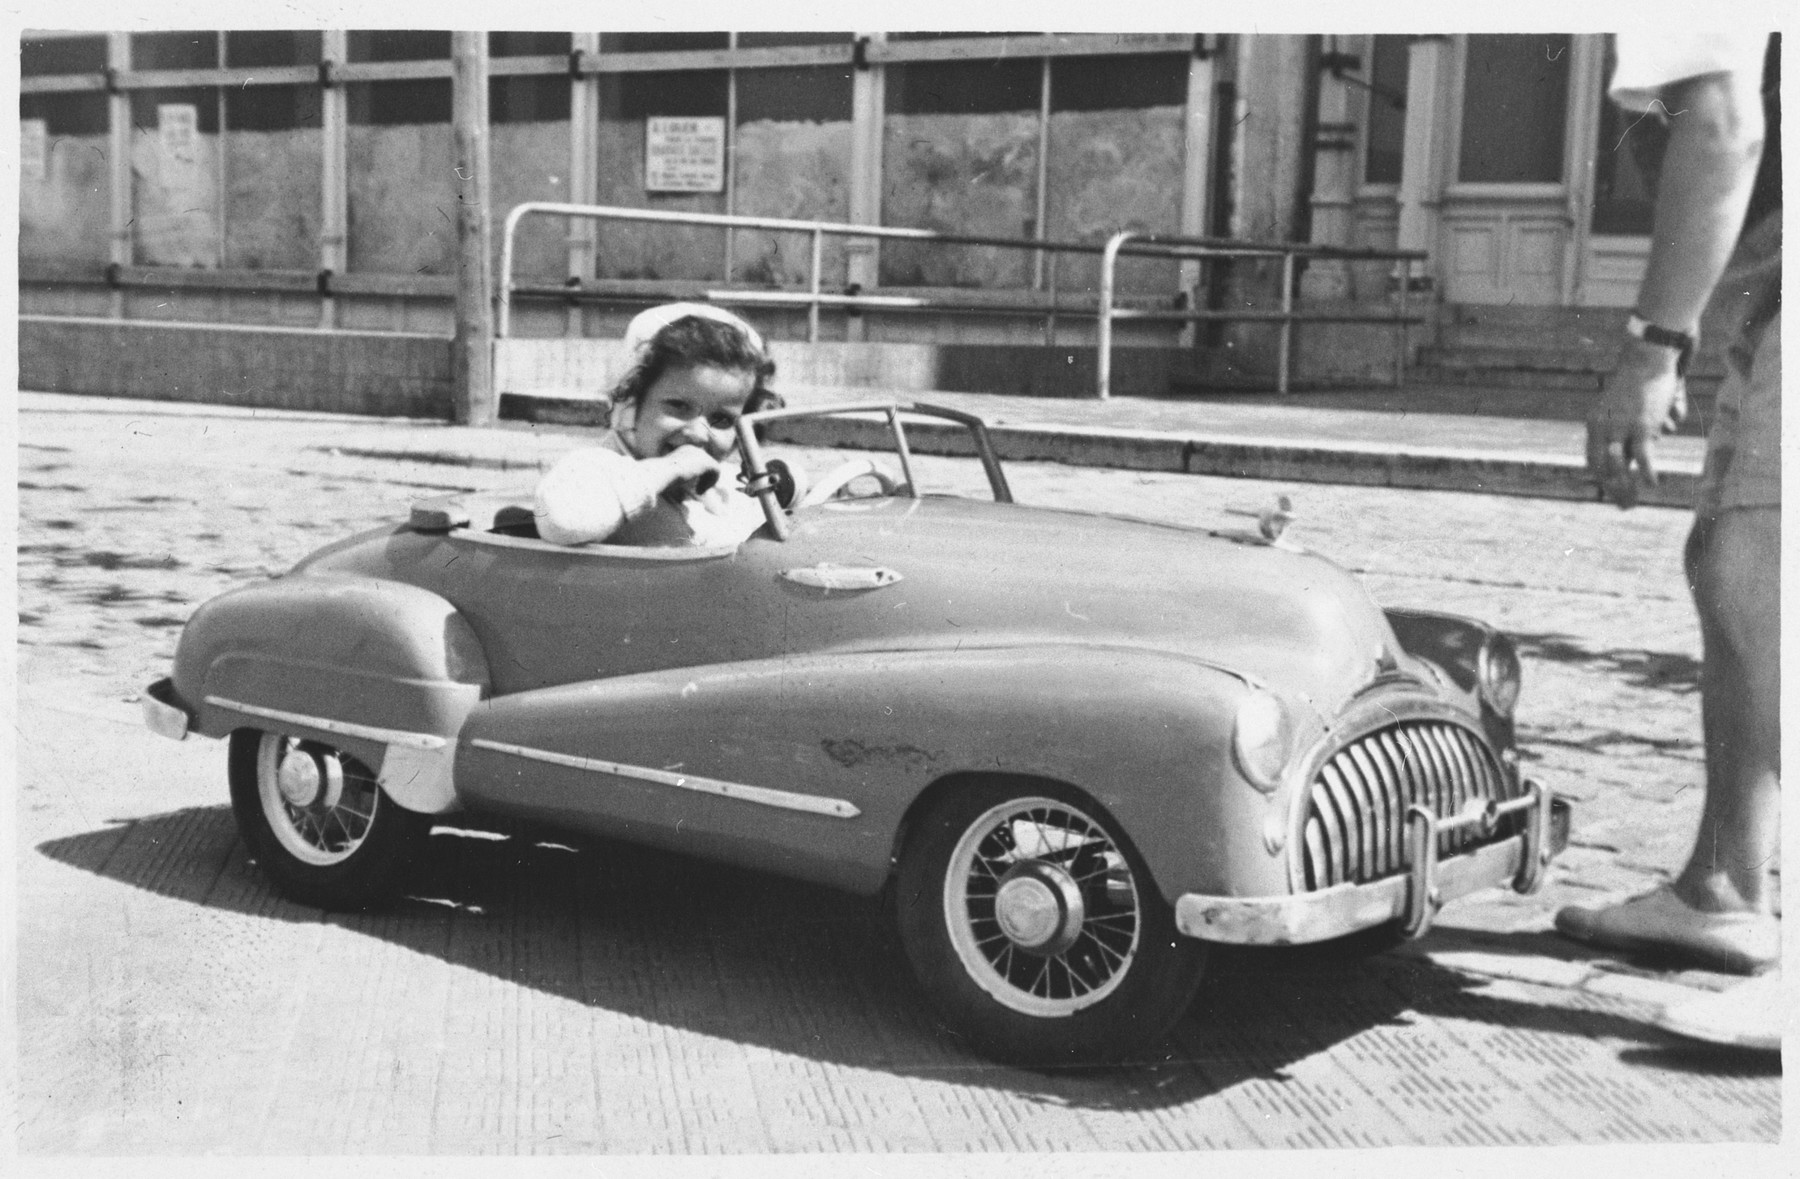 Marie-Claire goes for a ride in a toy car while staying with the Hickett family.